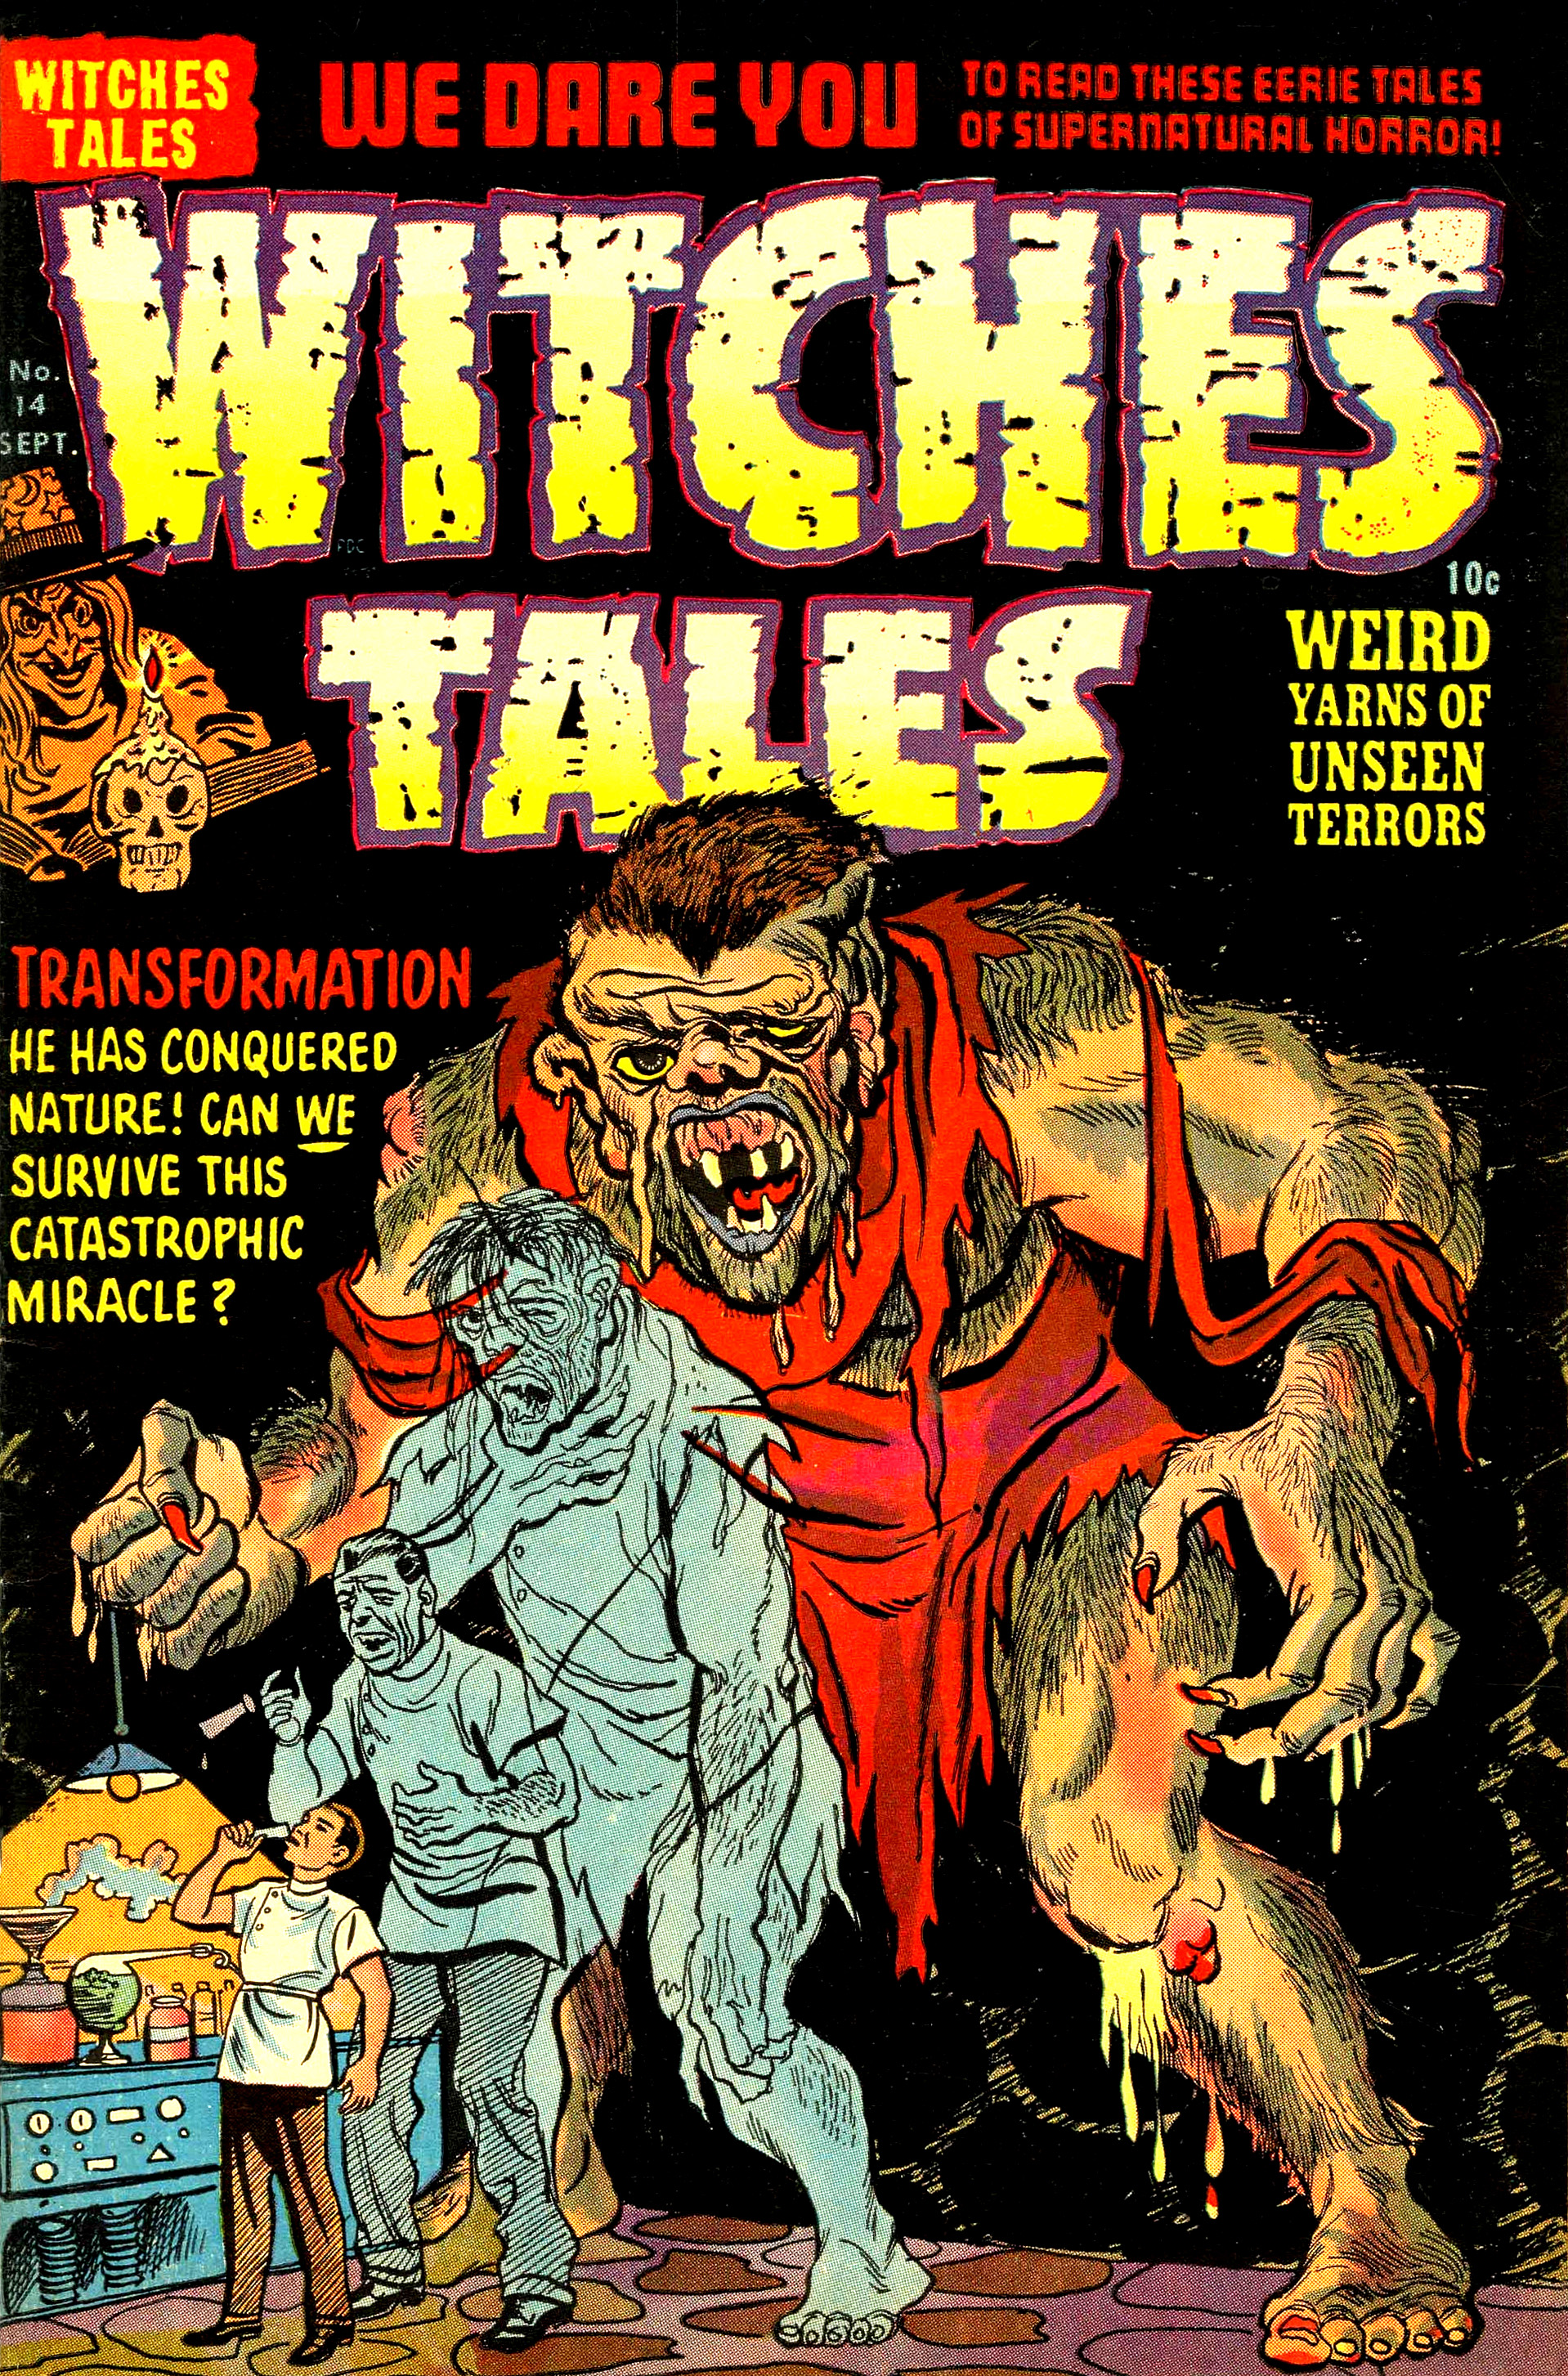 Witches Tales #14, Al Avison Cover (Harvey, 1952)